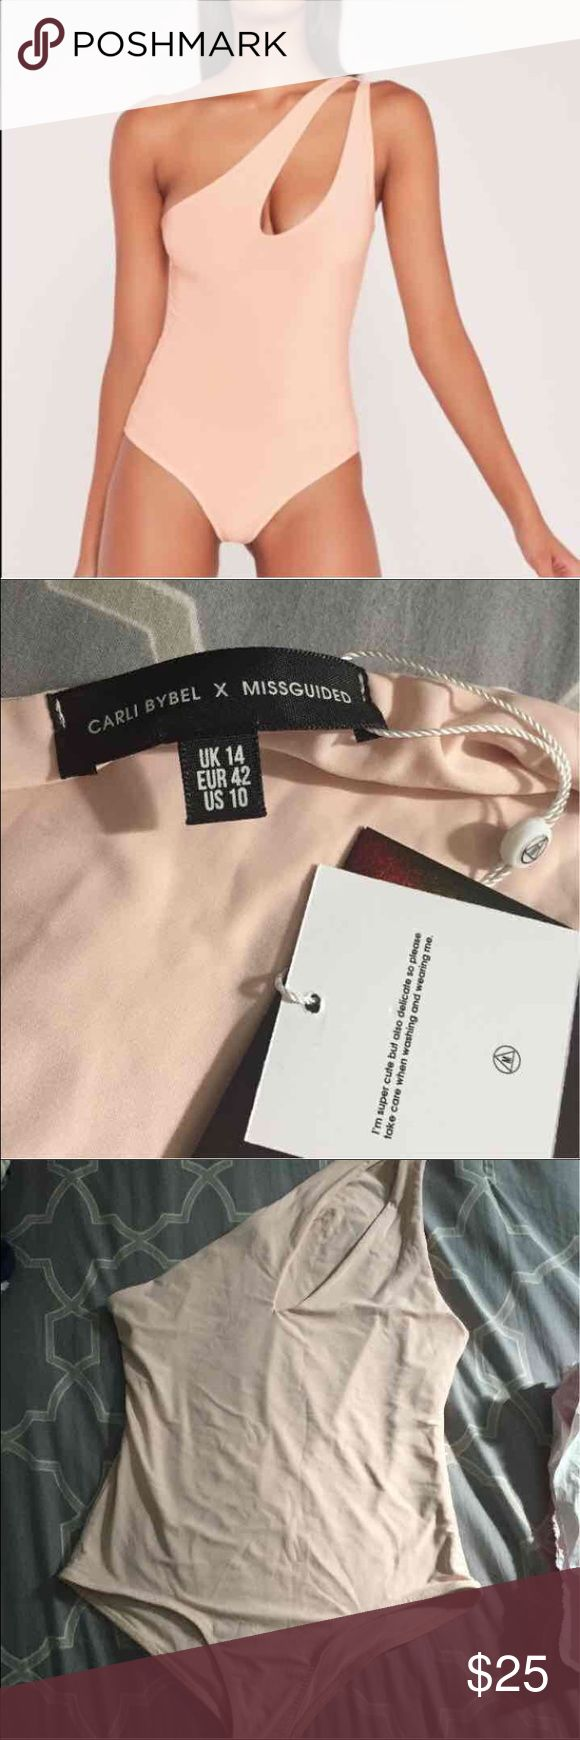 CarliBybel x Missguided Size 10 from Missguided.com this is not from pink !!!!! Missguided Tops